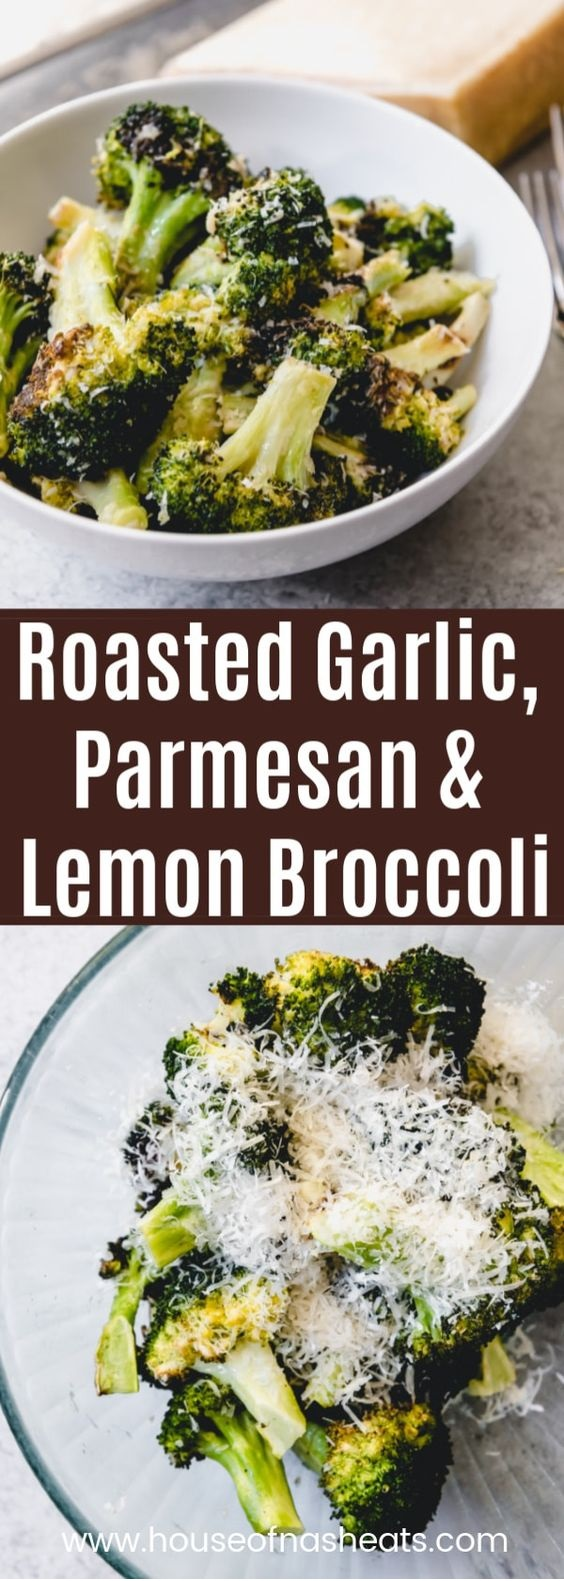 Oven Roasted Broccoli With Parmesan And Lemon